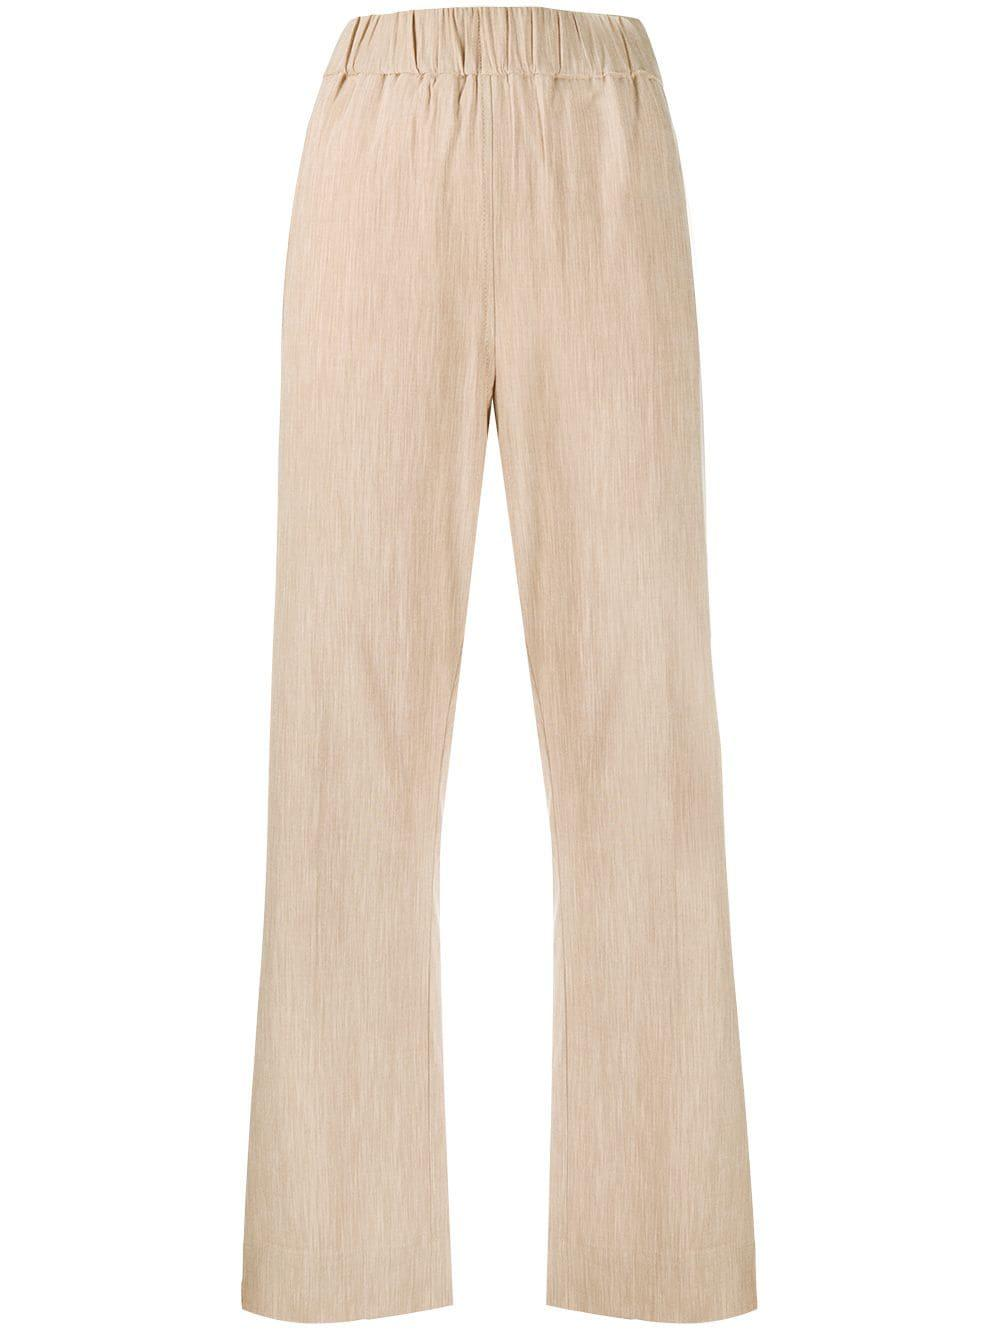 Melange Suiting Elastic Waist Pants